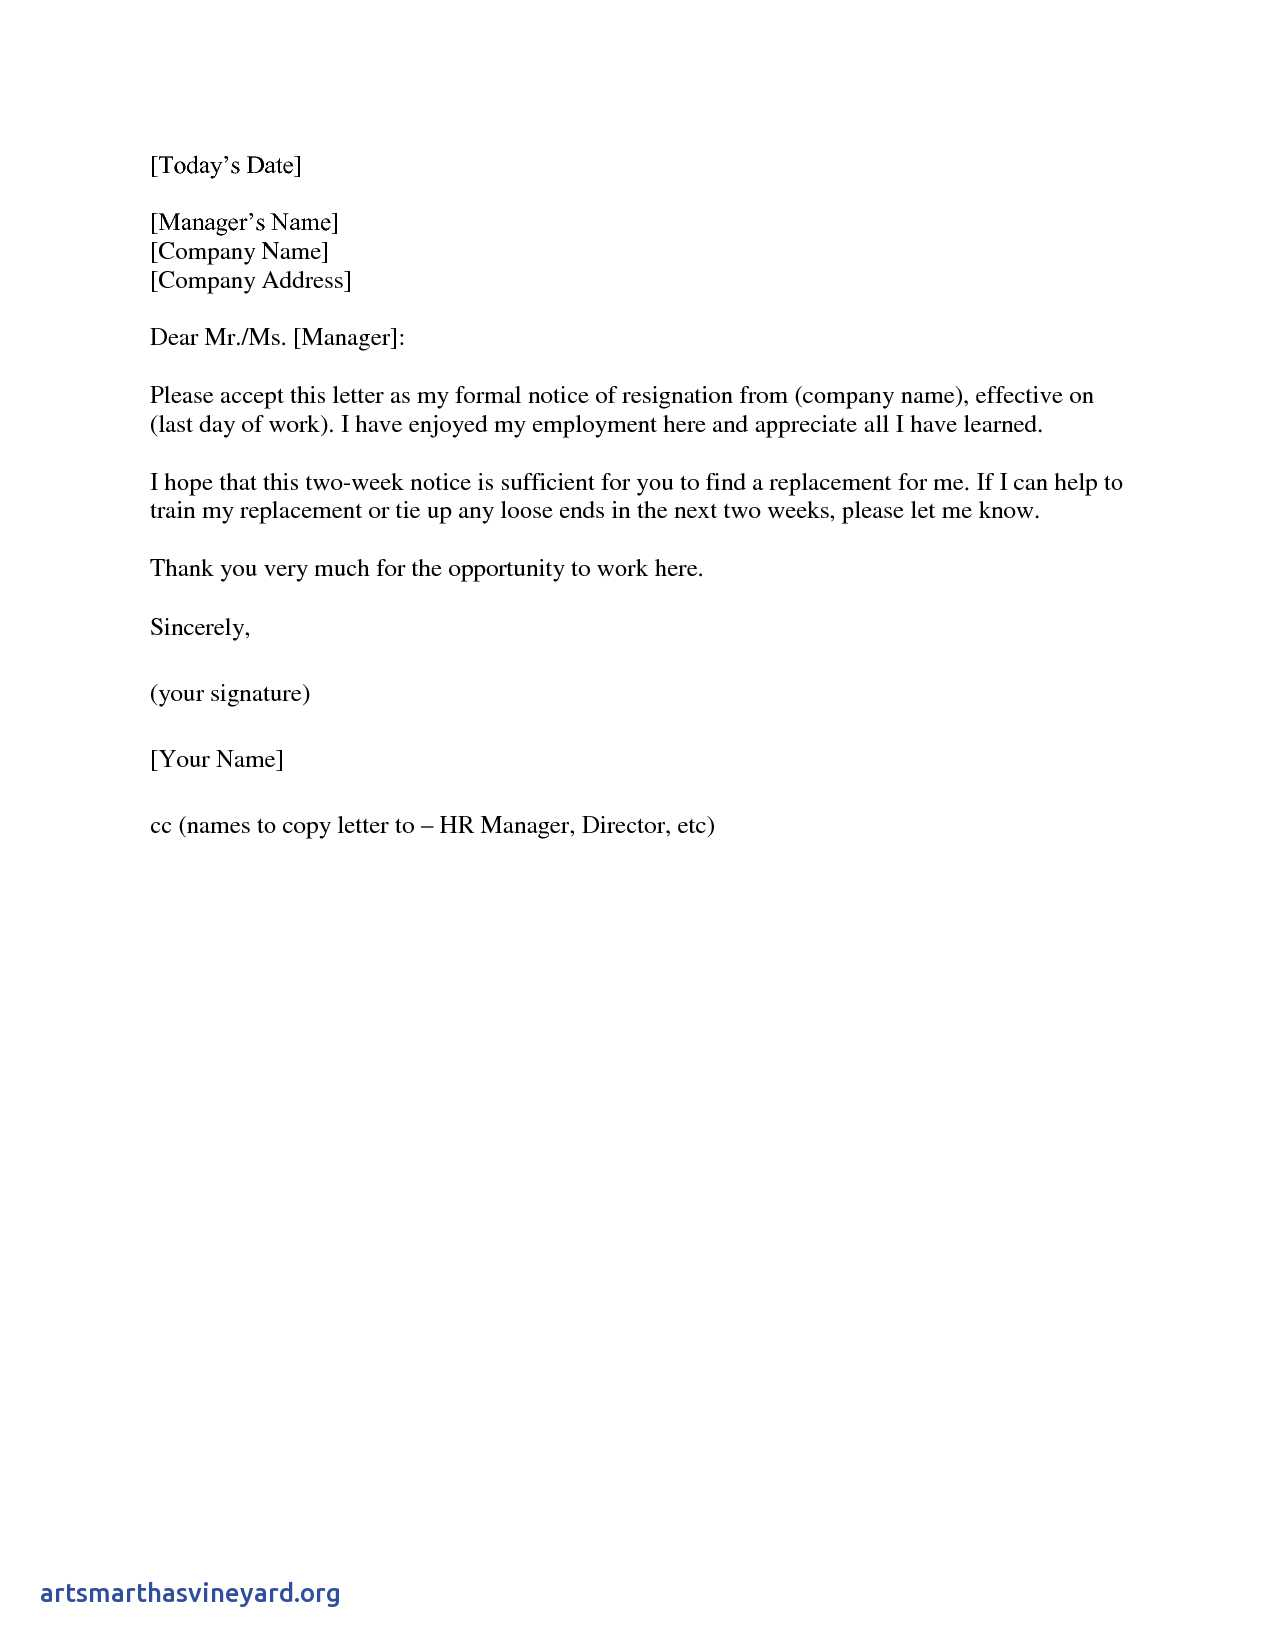 2 Week Resignation Letter Template - 2 Weeks Notice Letter Resignation Letter 2 Week Notice From Two Week